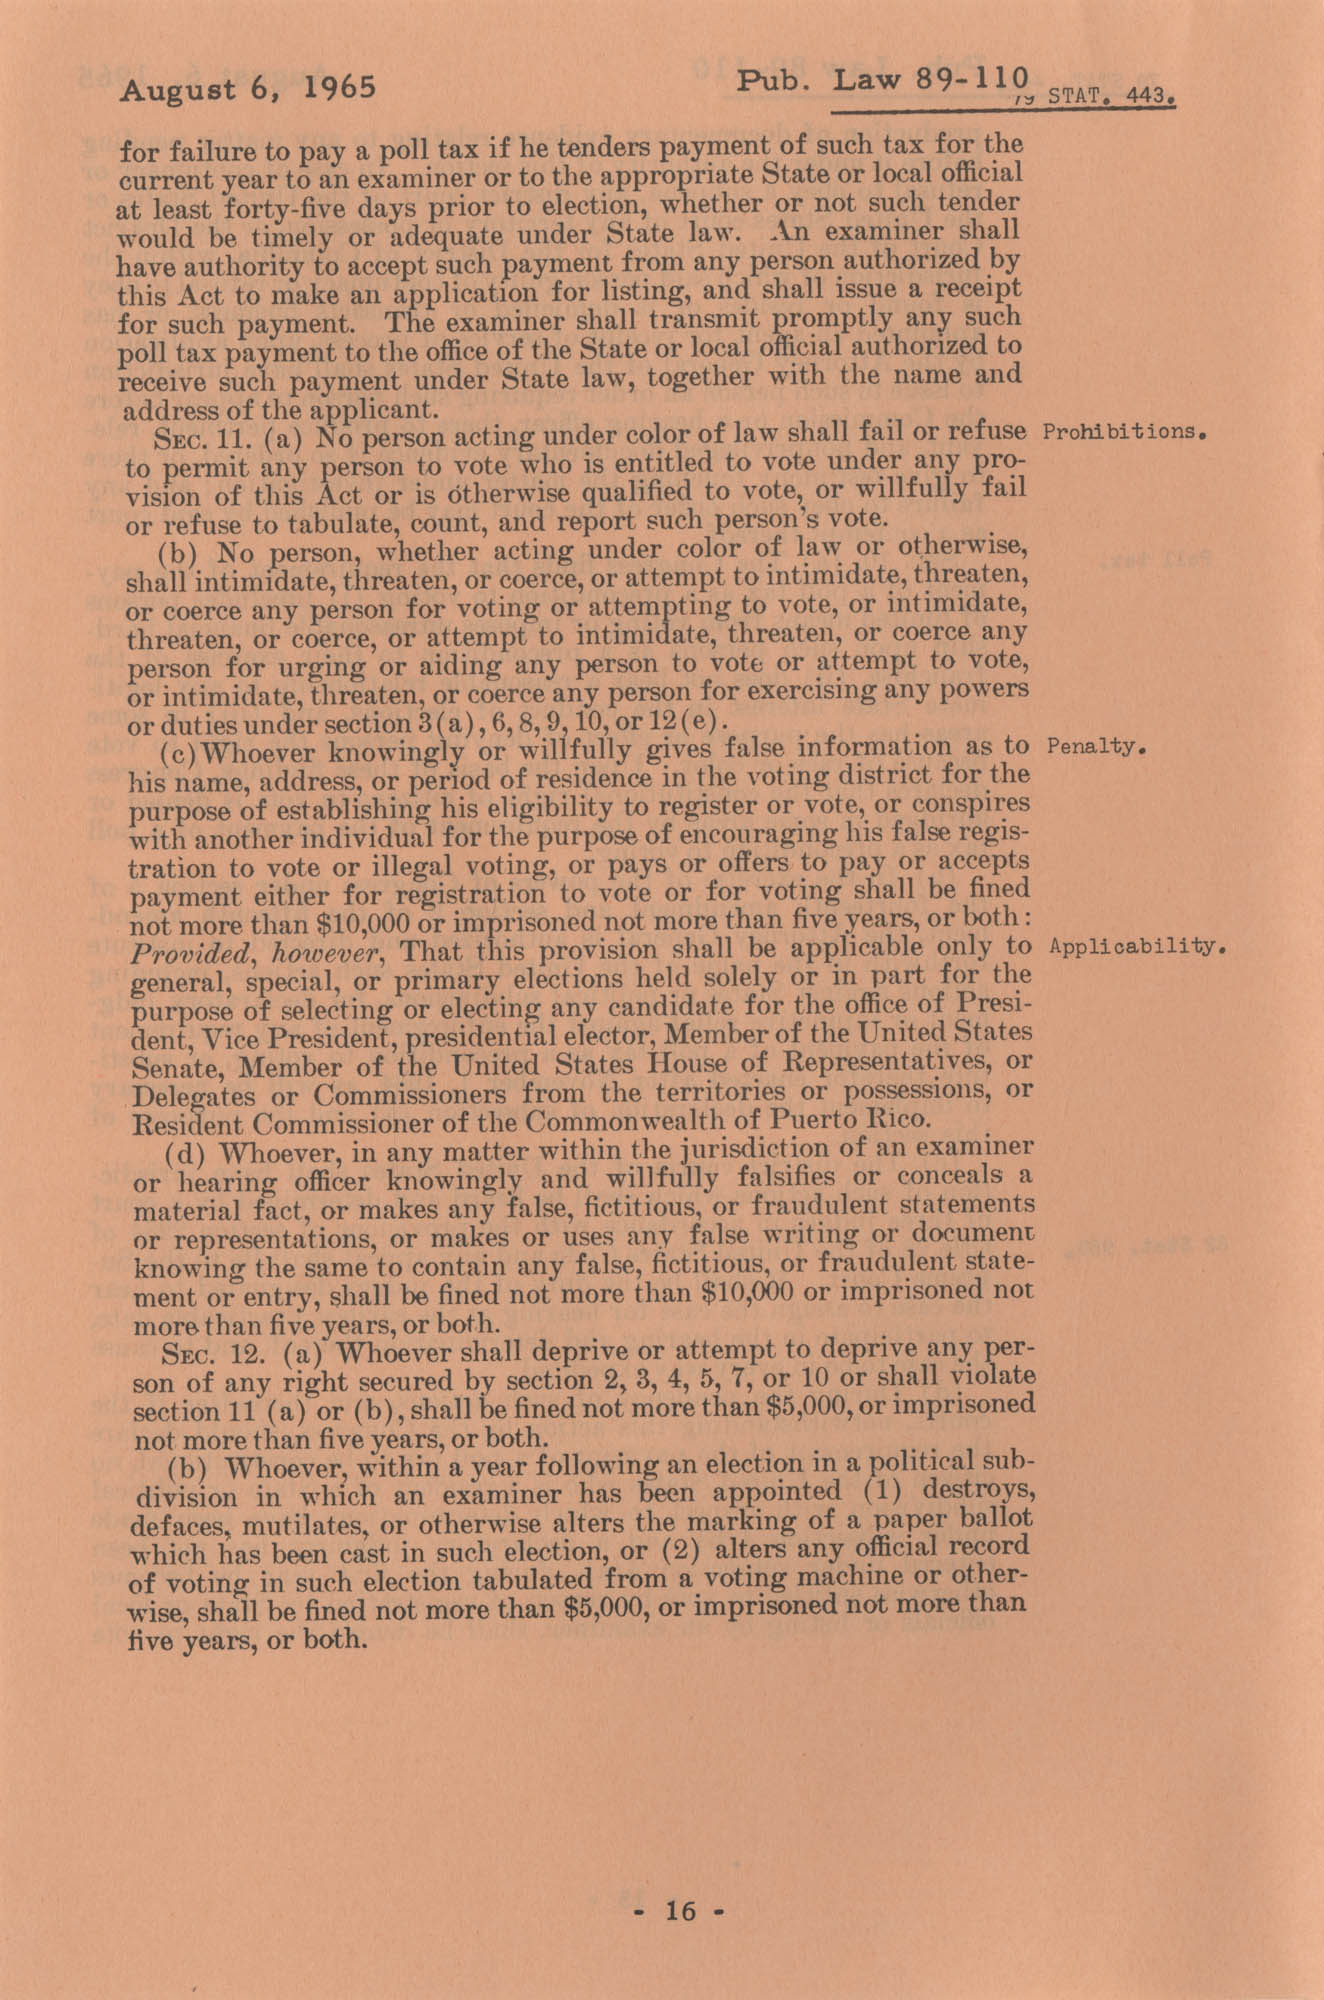 The Voting Rights Act of 1965, Page 16